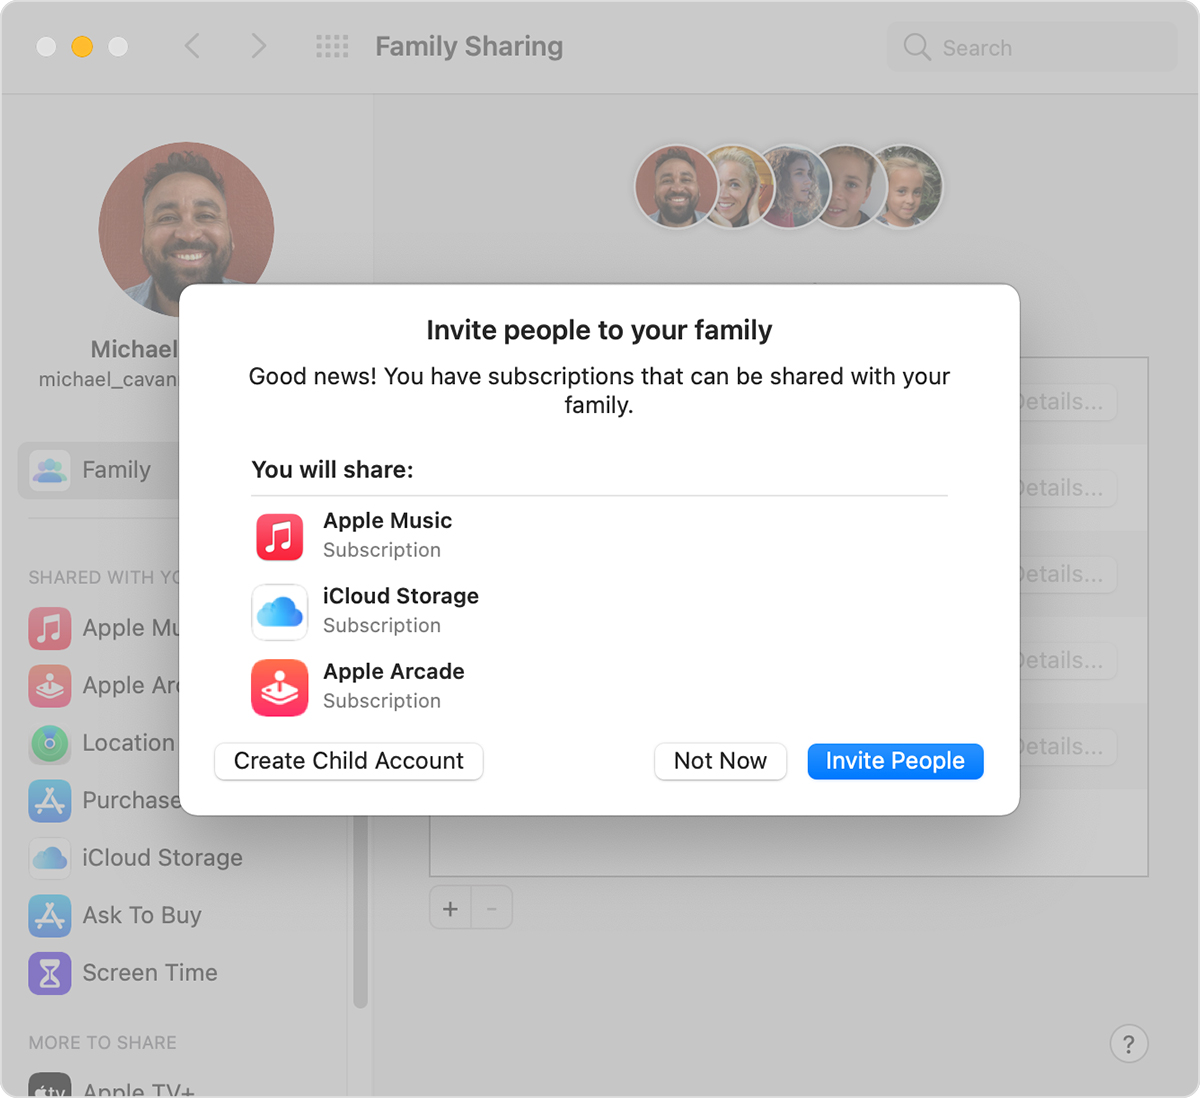 Mac showing the Invite People button.